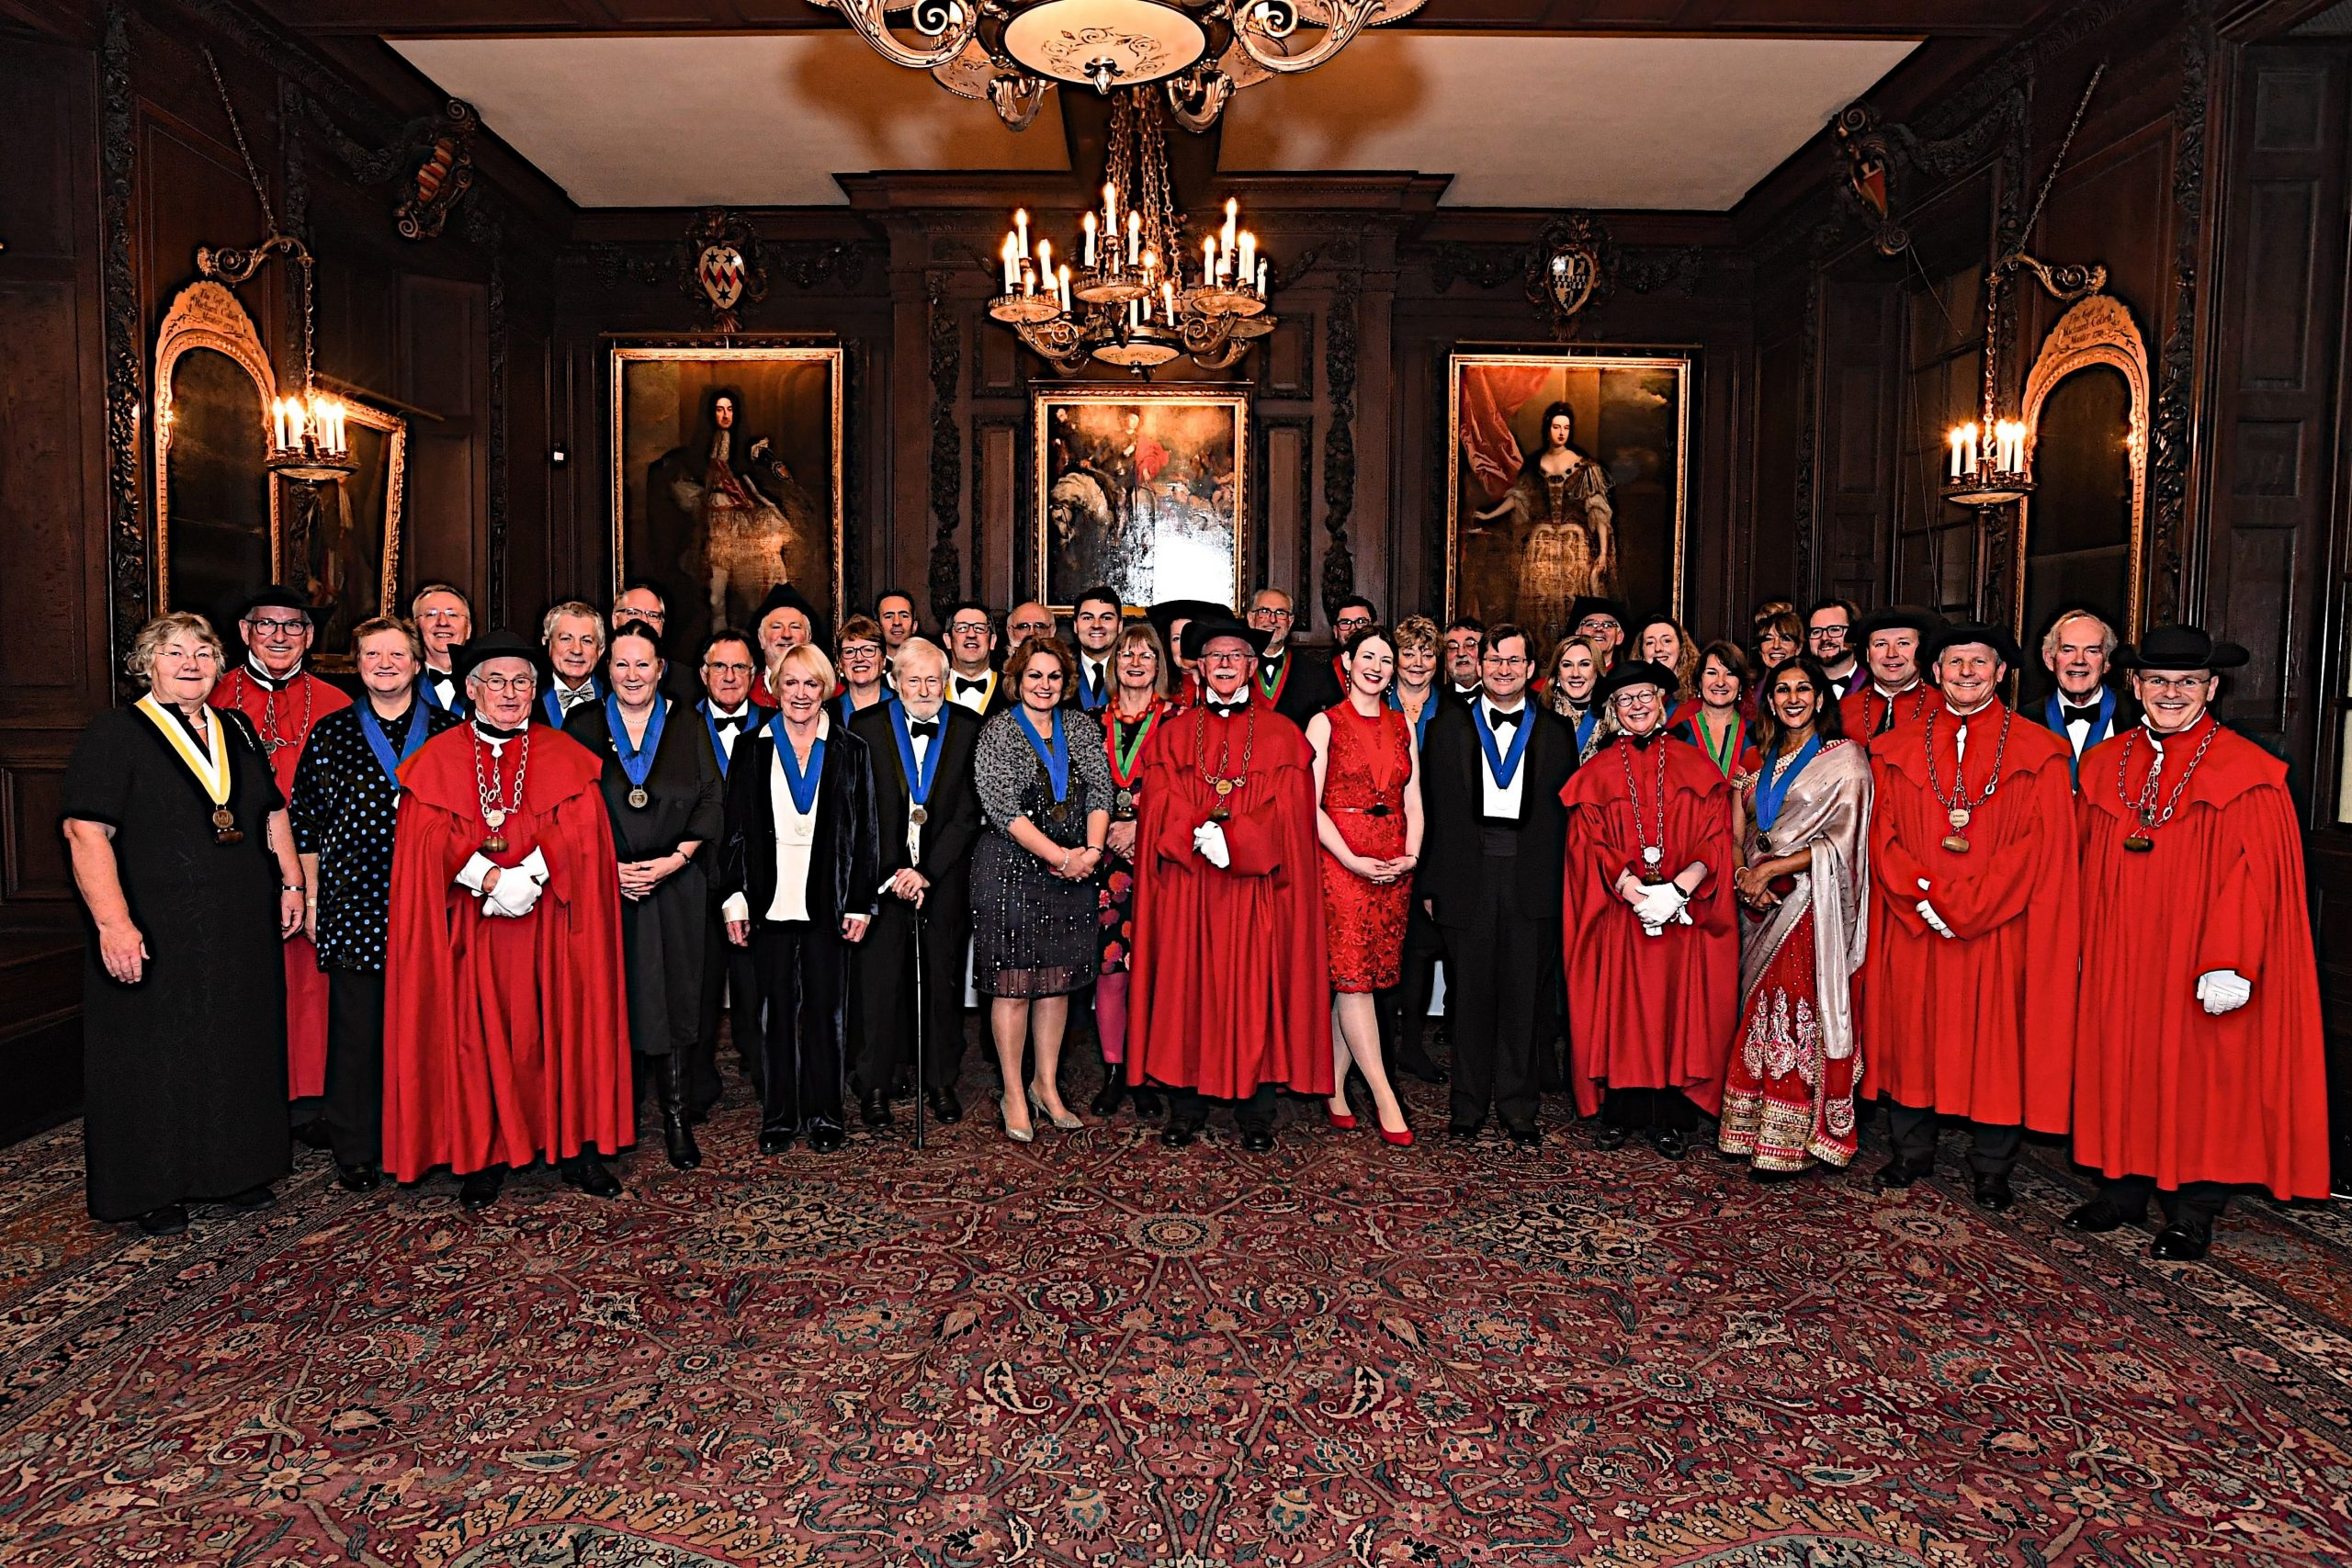 CHAPITRE EXCEPTIONNEL 26 NOVEMBRE 2019 IN LONDON AT VINTNERS' HALL